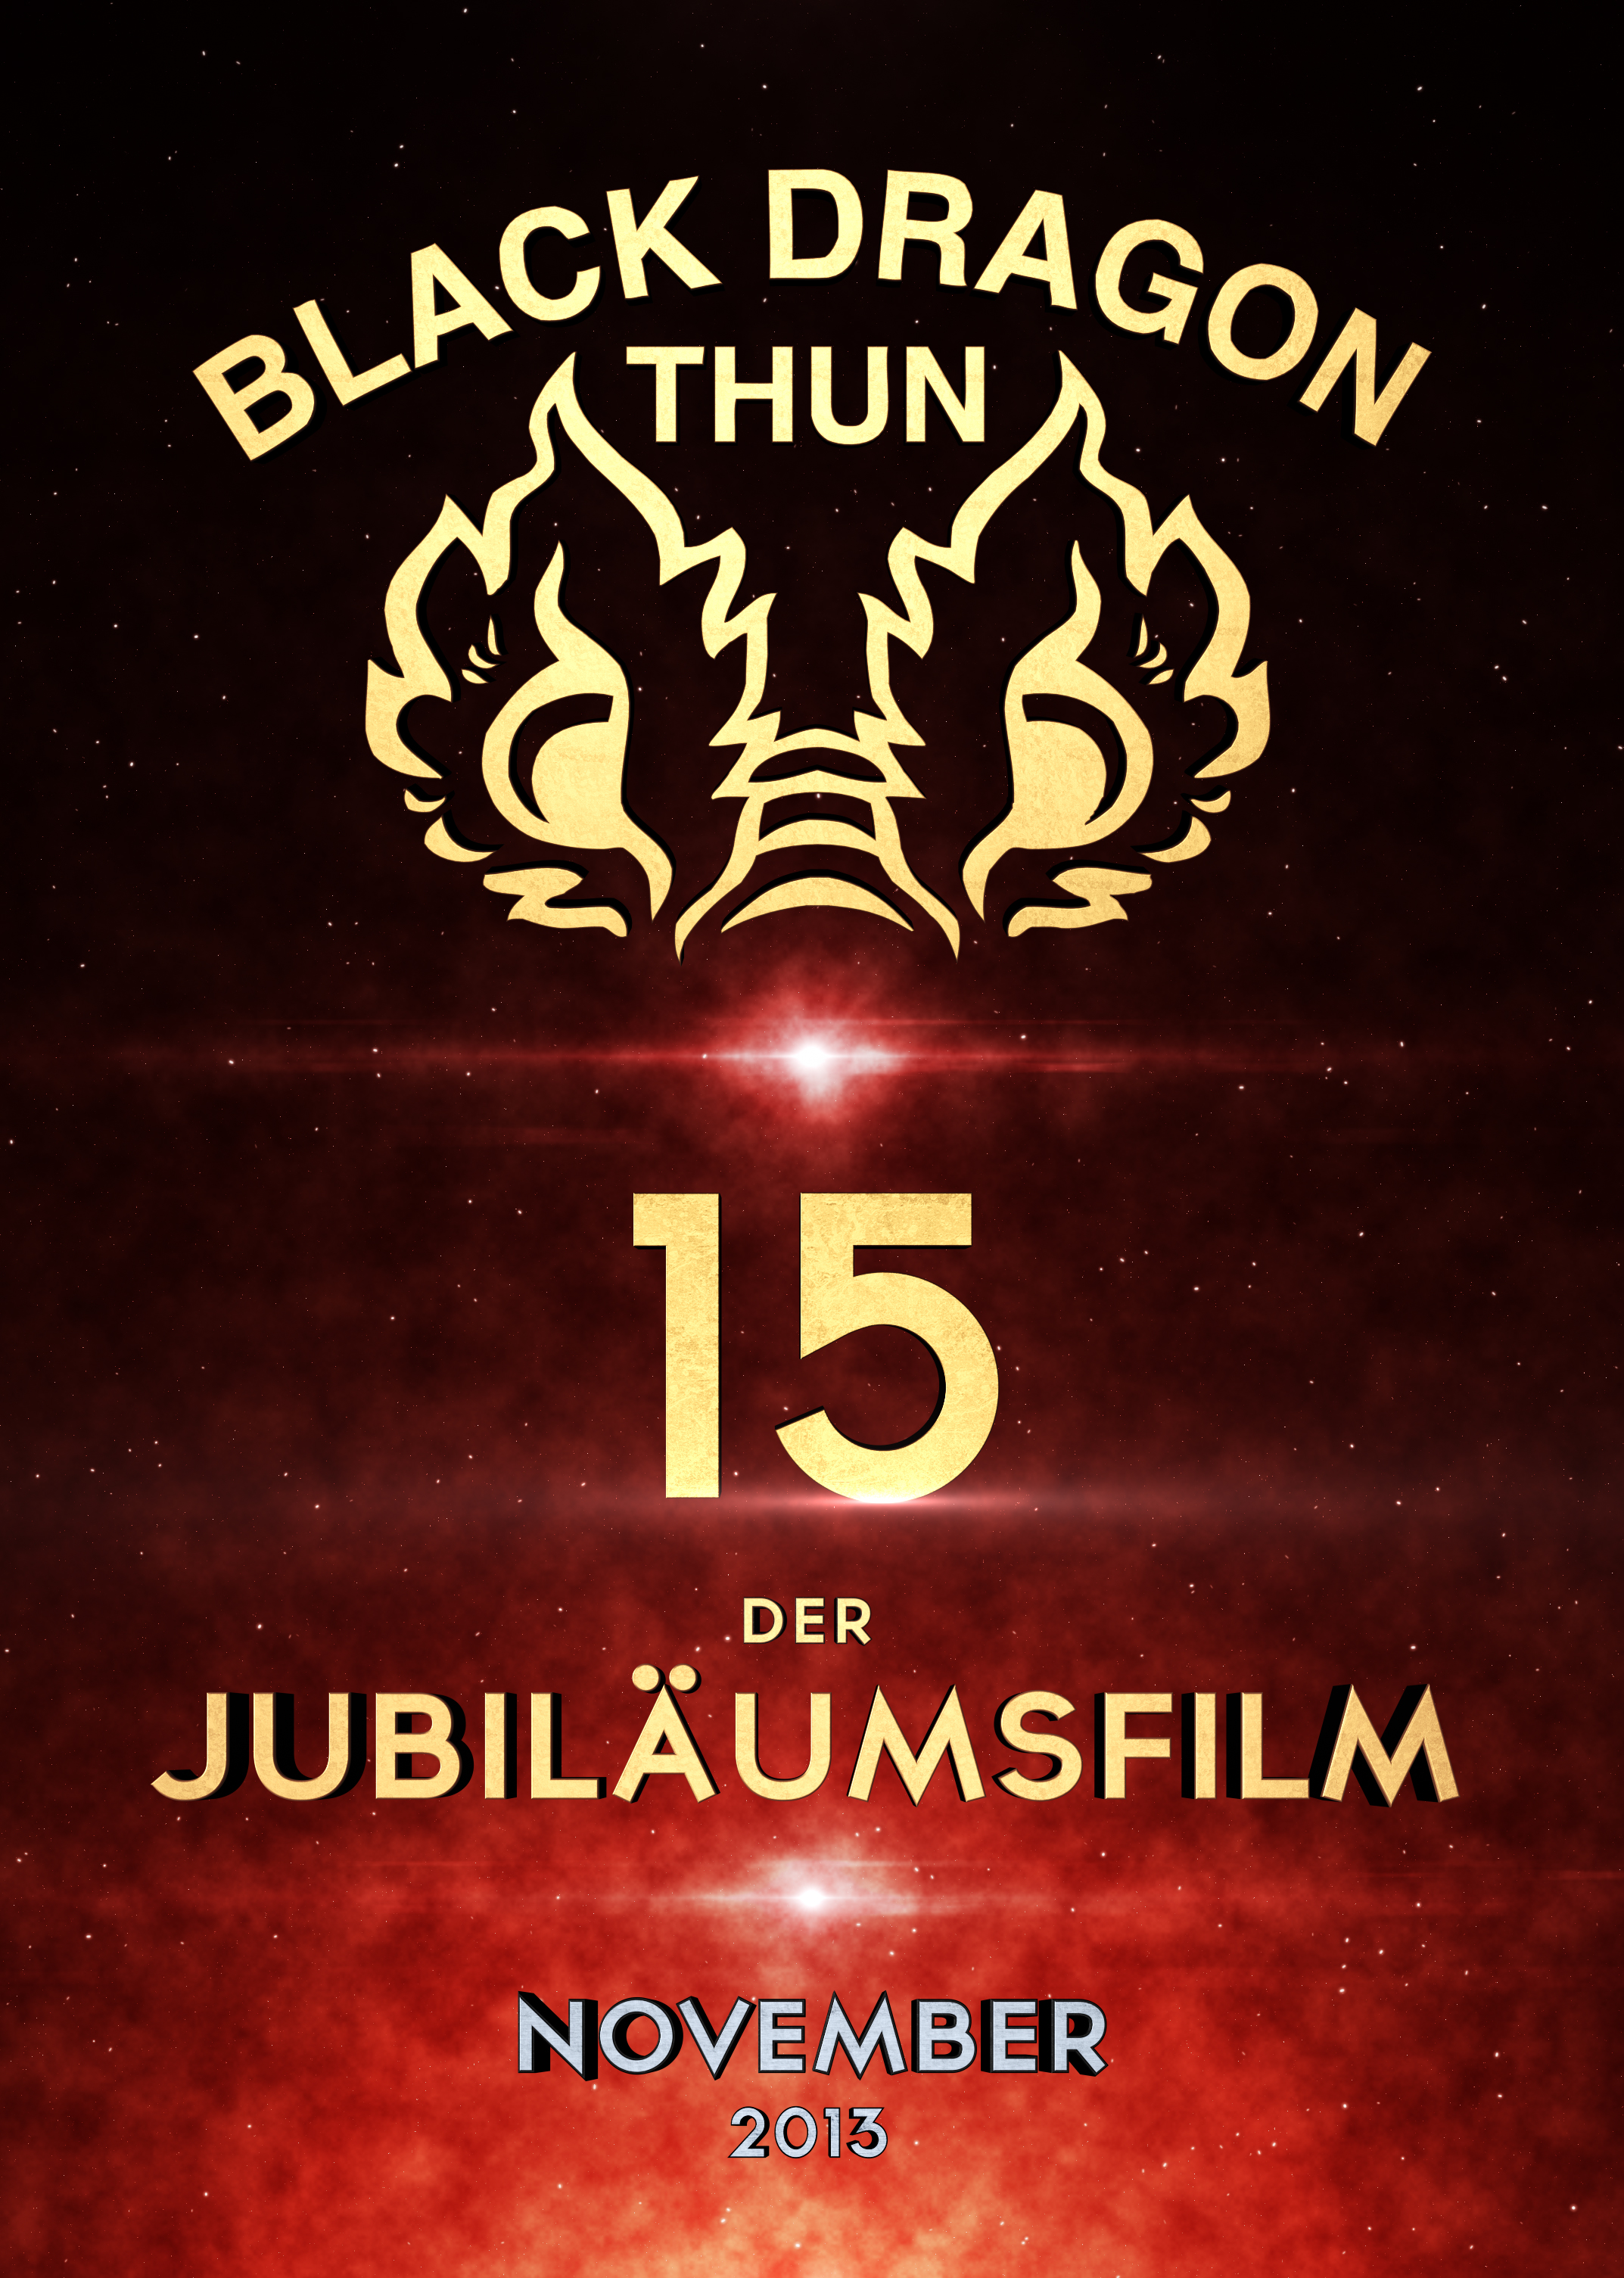 Black Dragon Thun - Teaser Poster